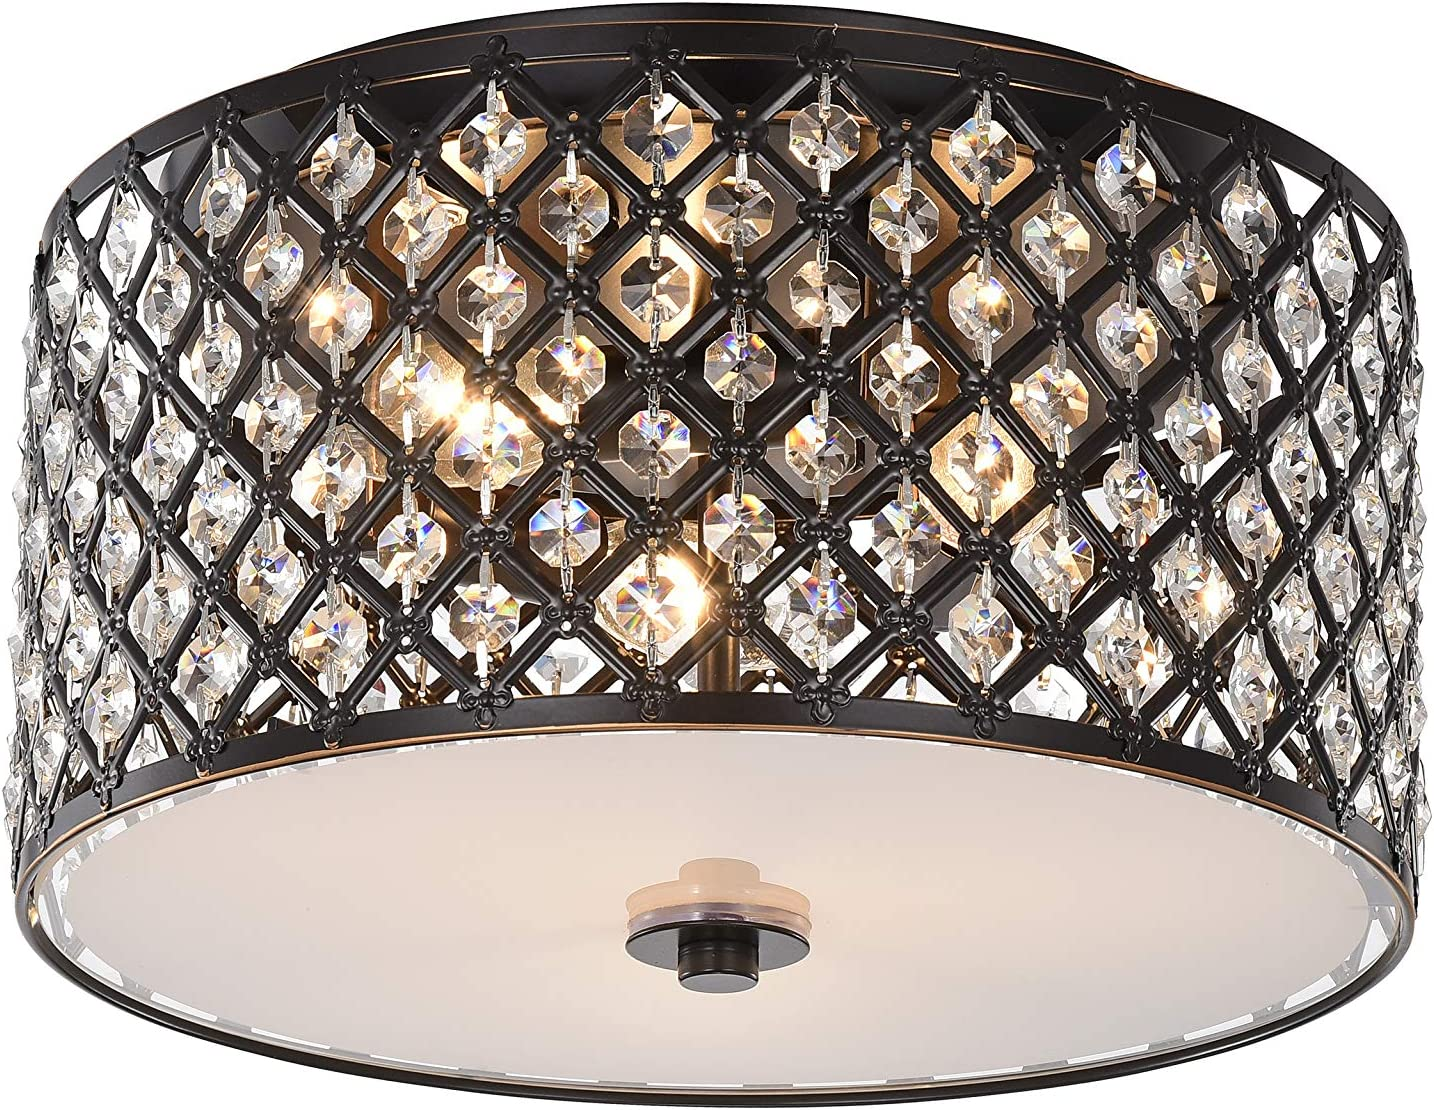 Chandeliers Crystal Chandelier Antique Bronze Flush Mount Light Fixture 3 Light Ceiling Lights